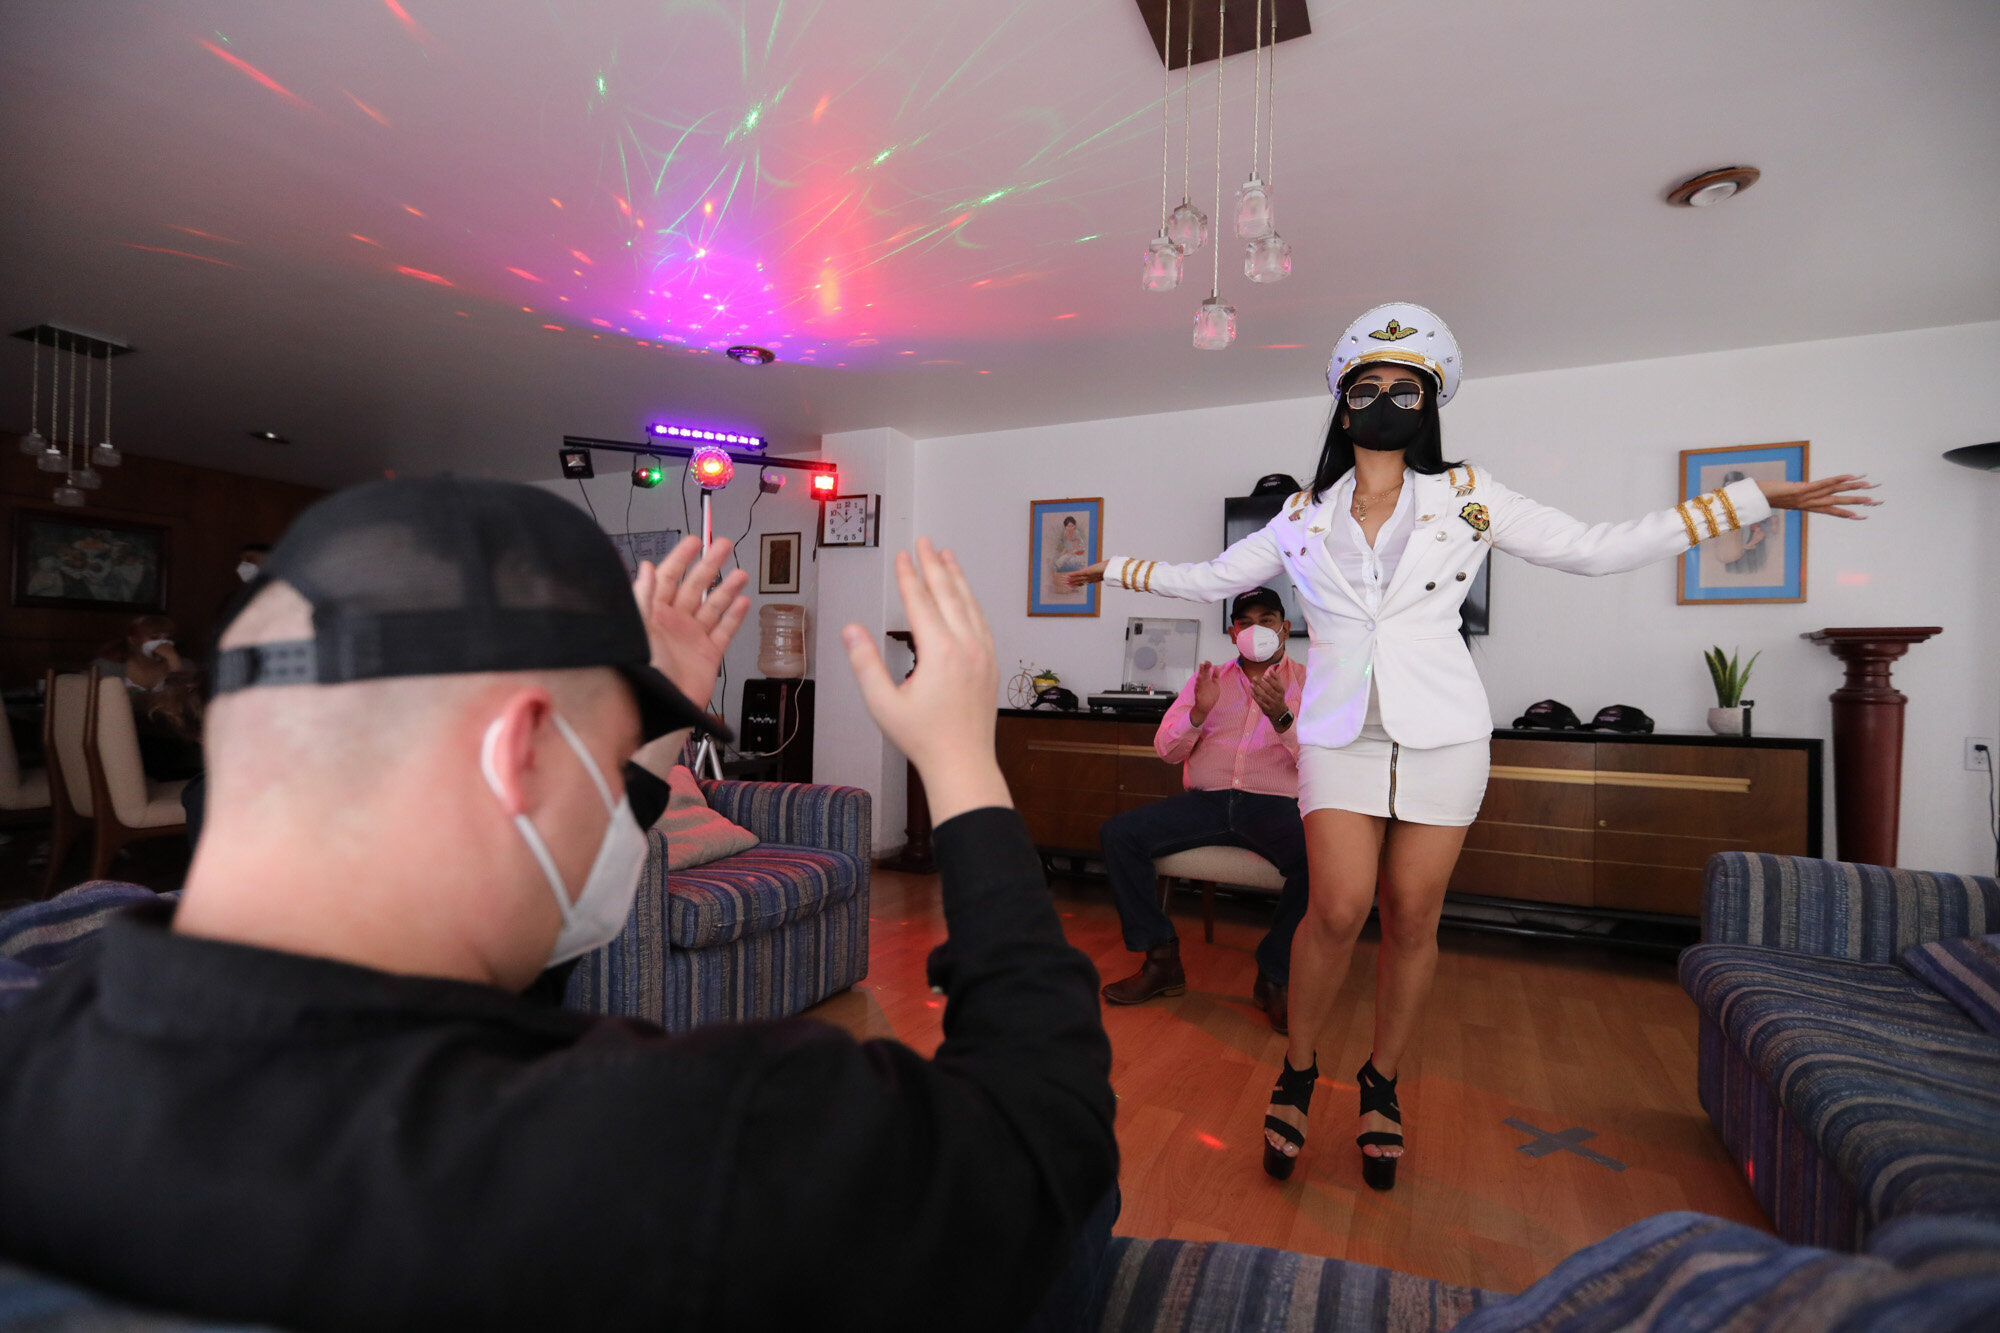 A woman wearing a protective face mask amid the coronavirus pandemic dances in a client's home in Mexico City on Aug. 8, 2020. The pandemic has forced businesses to adapt to a new normality and the adult entertainment industry is no exception. (AP Photo/Eduardo Verdugo)